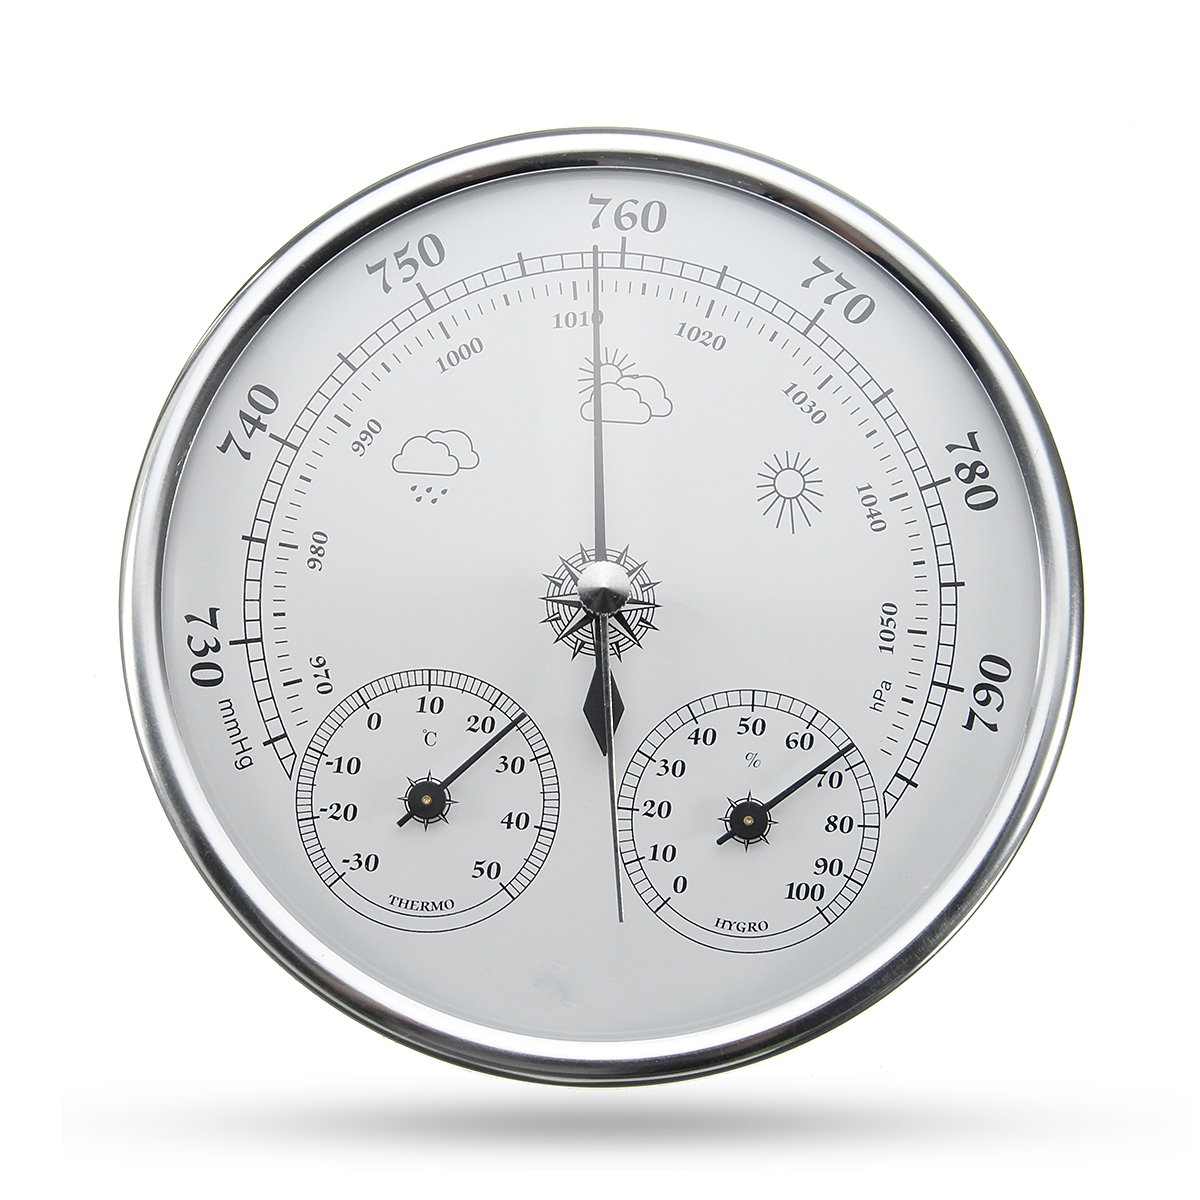 INNI Wall Hanging Weather Forecast Thermometer Hygrometer Air Pressure Meter-30~+50 0~100% Rh 960~1060hPa